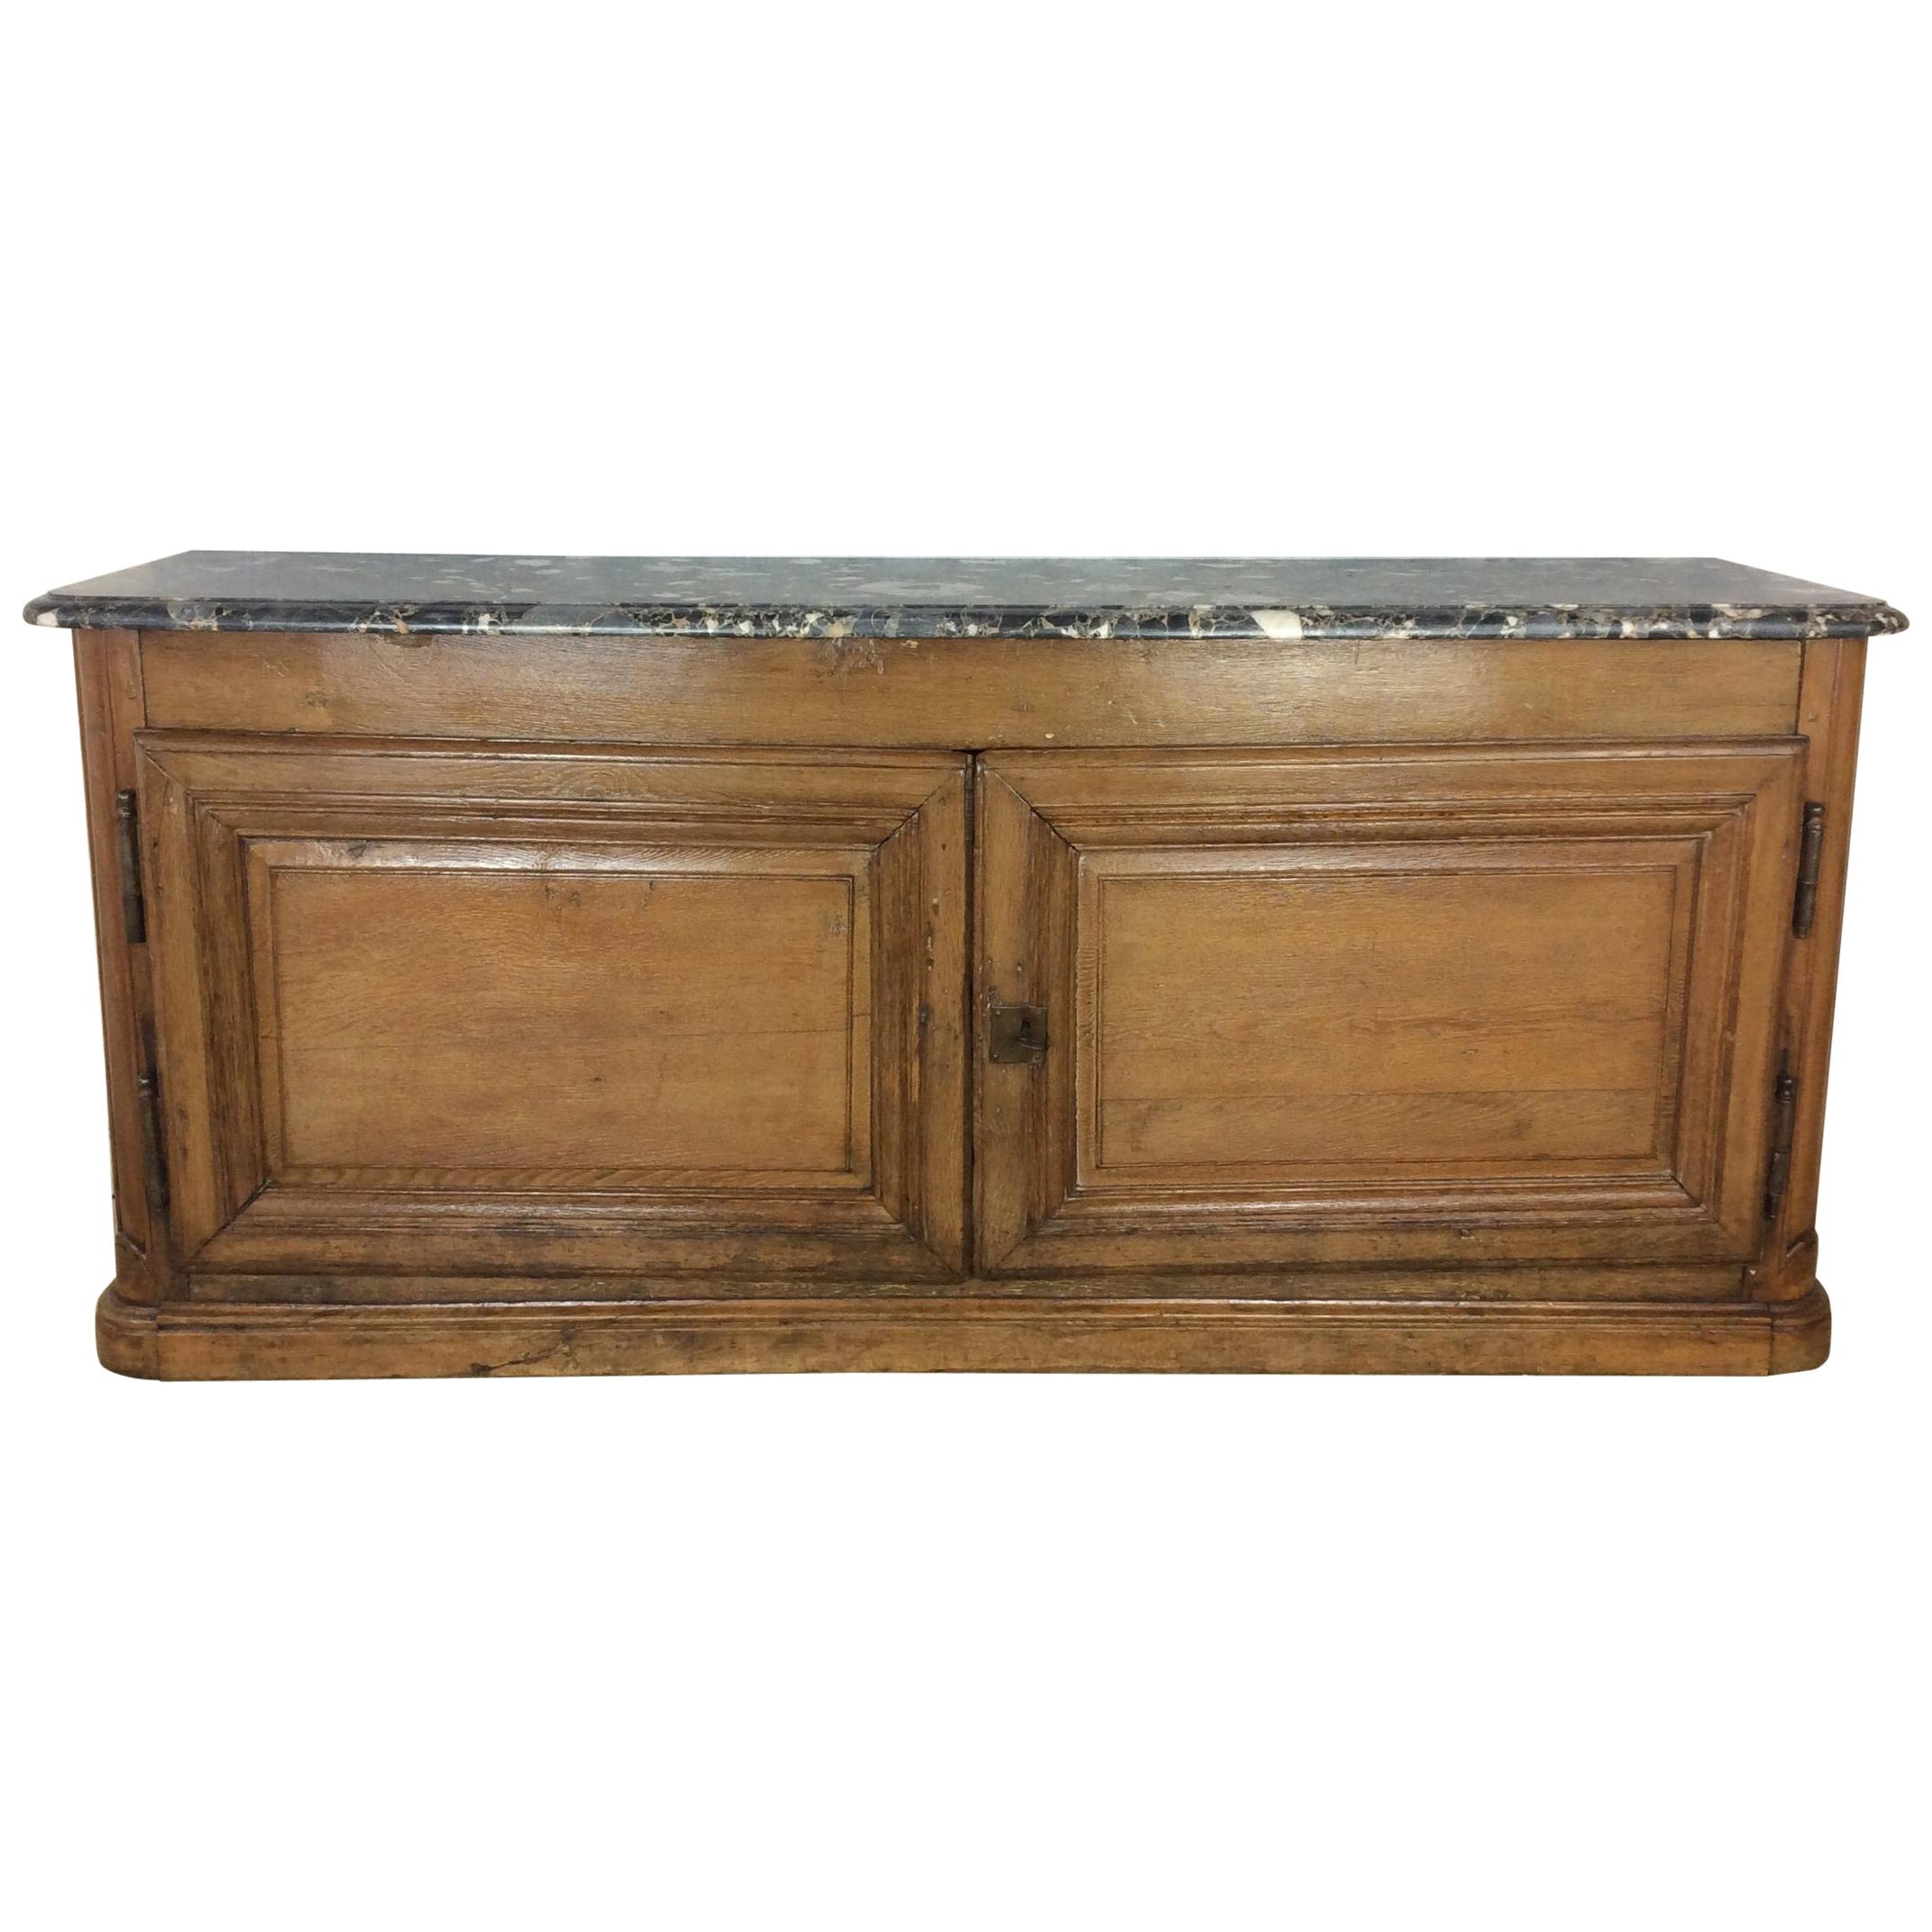 18th Century French Buffet de Chasse, Enfilade or Credenza